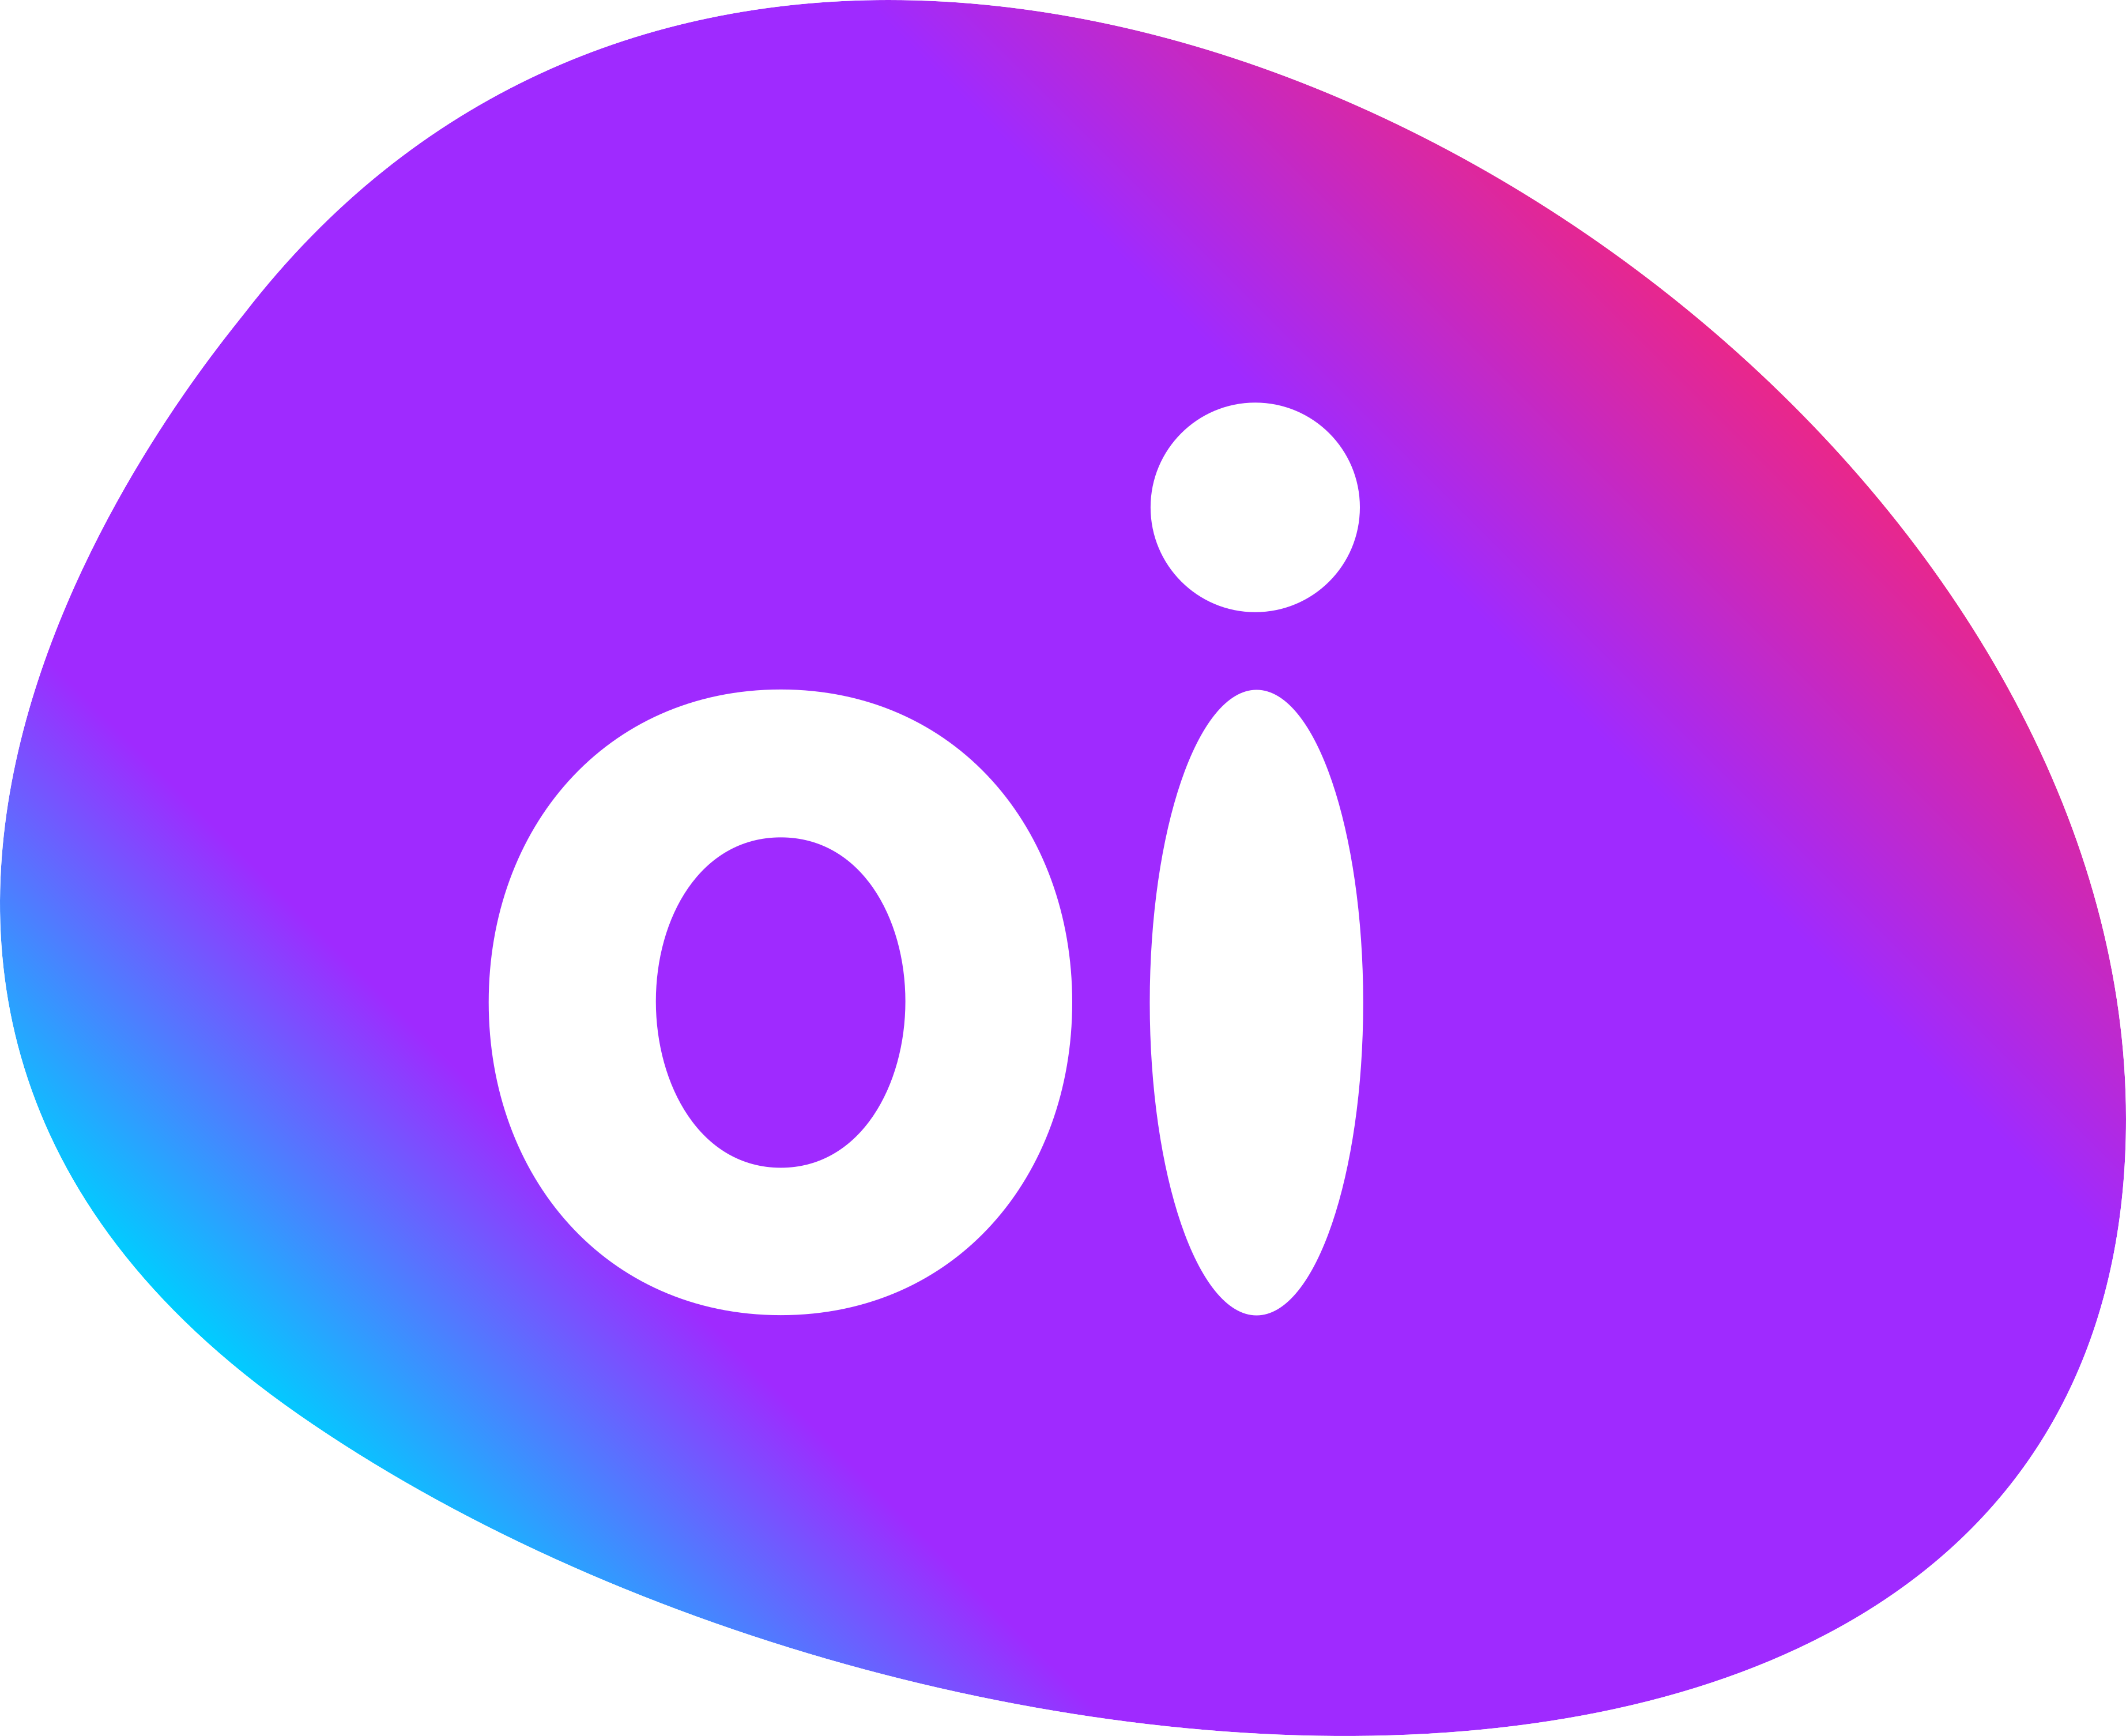 Portable Oi Symbol Internet Graphics Logo Network PNG Image